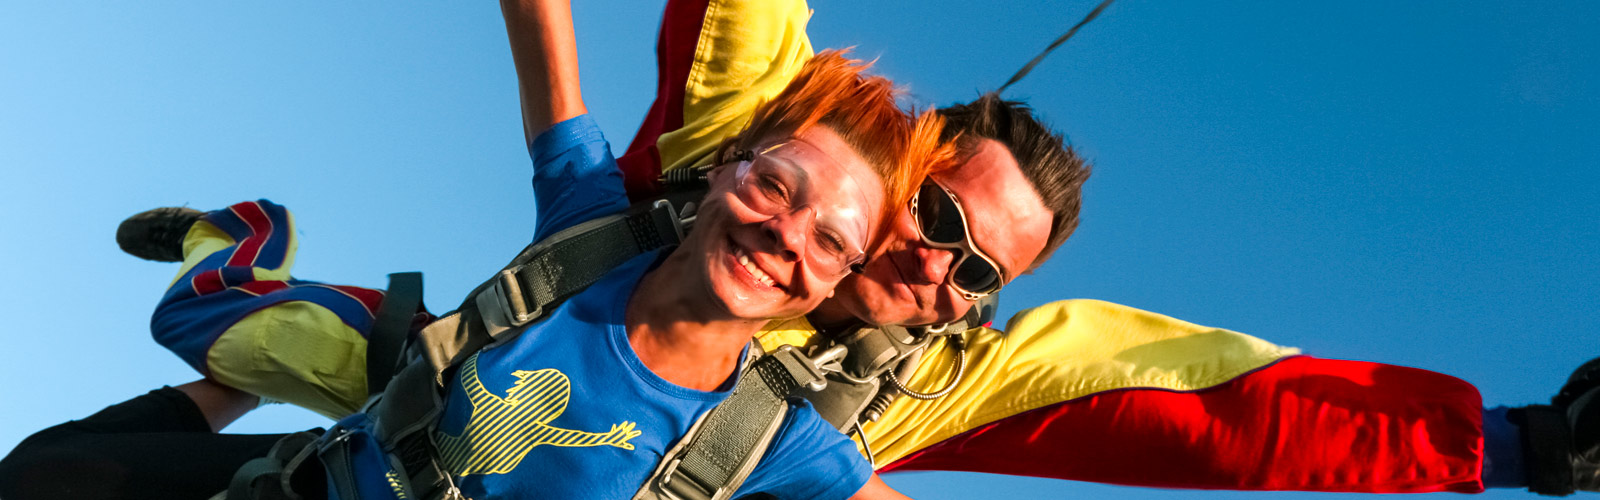 Sky diving at Airlie Beach